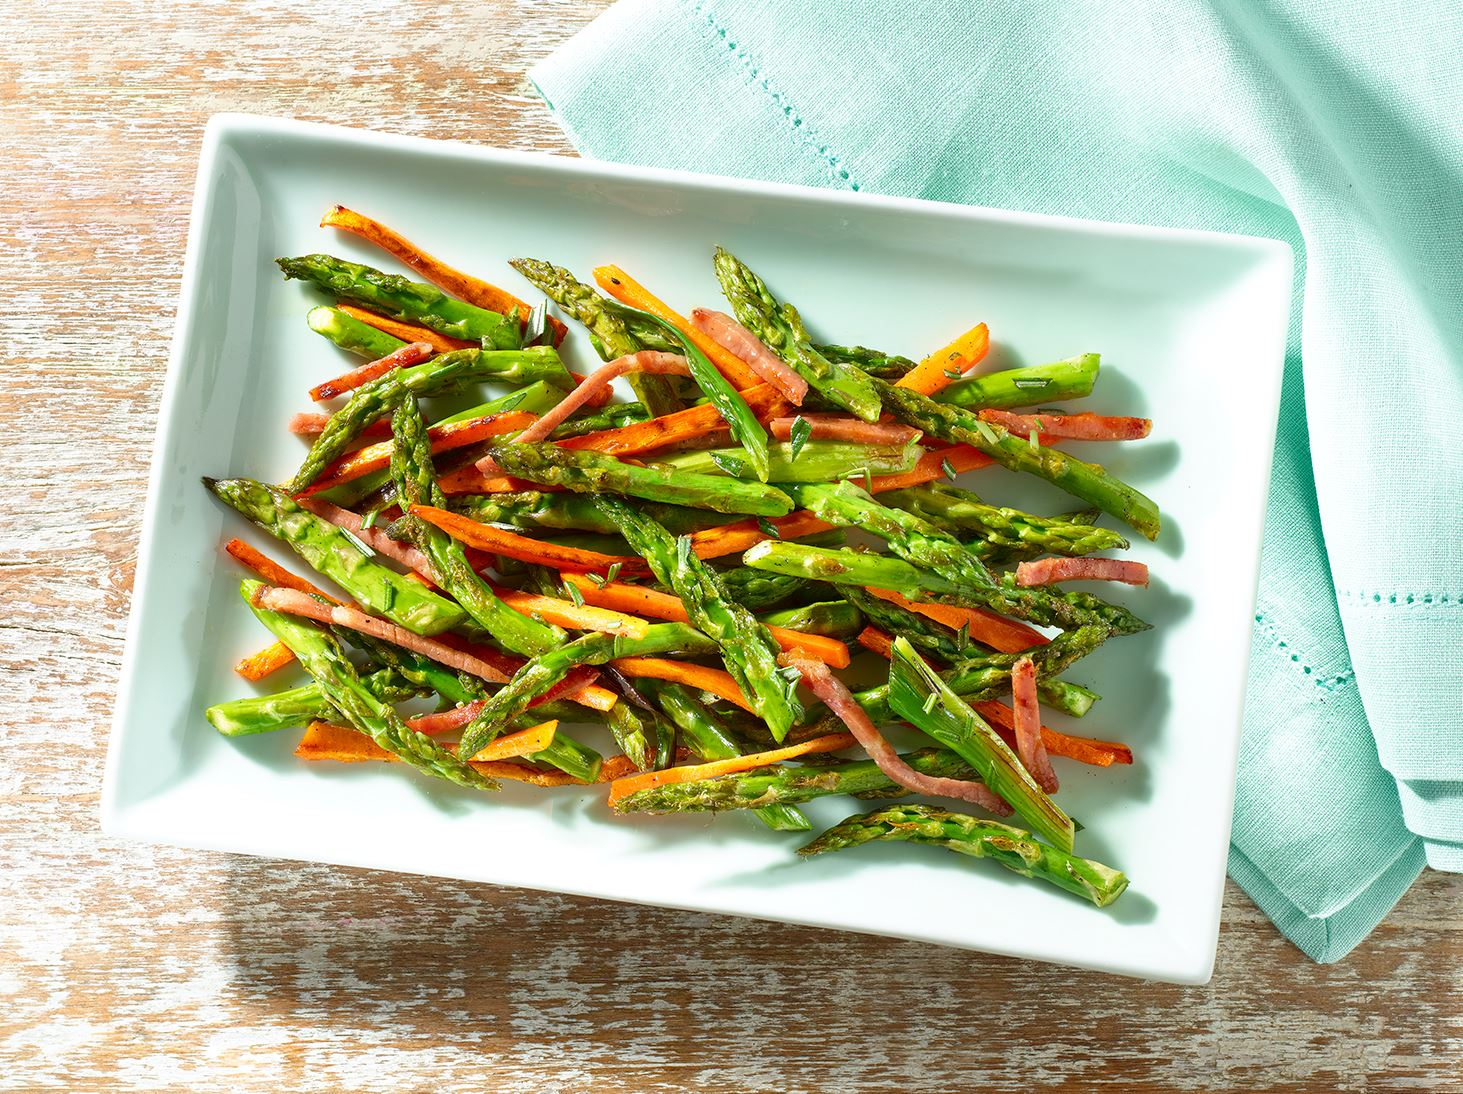 Roasted Asparagus and Carrots with Crispy Serrano Ham